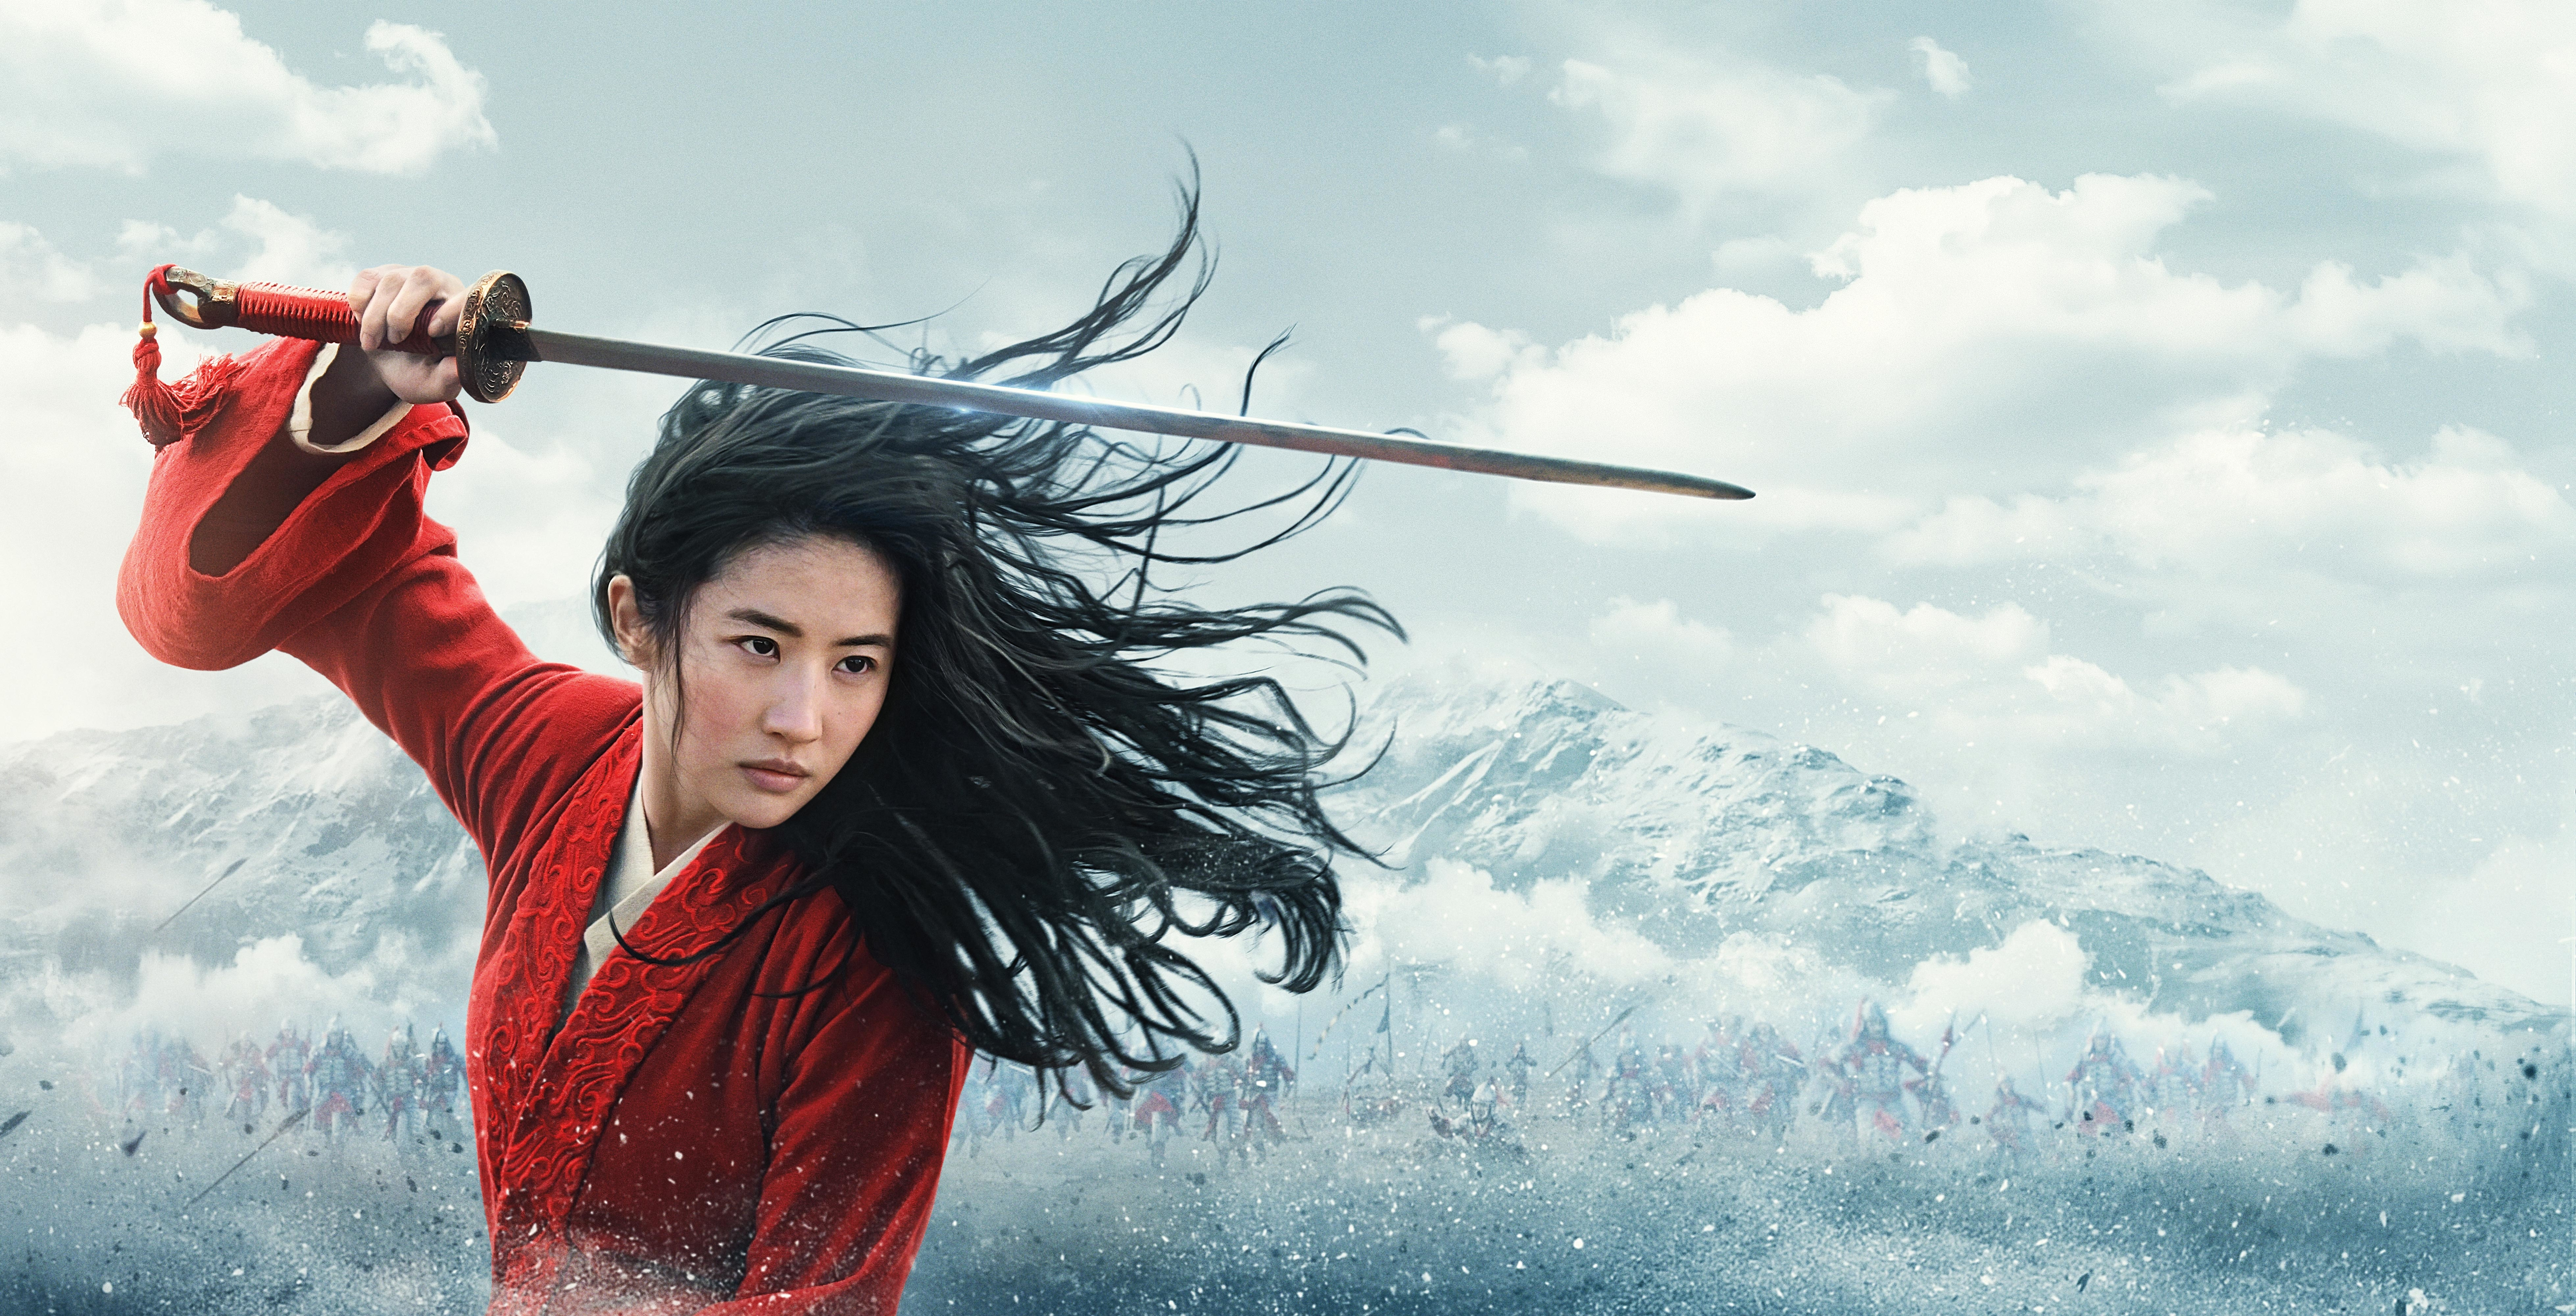 1366x768 8k Poster Of Mulan 1366x768 Resolution Wallpaper Hd Movies 4k Wallpapers Images Photos And Background